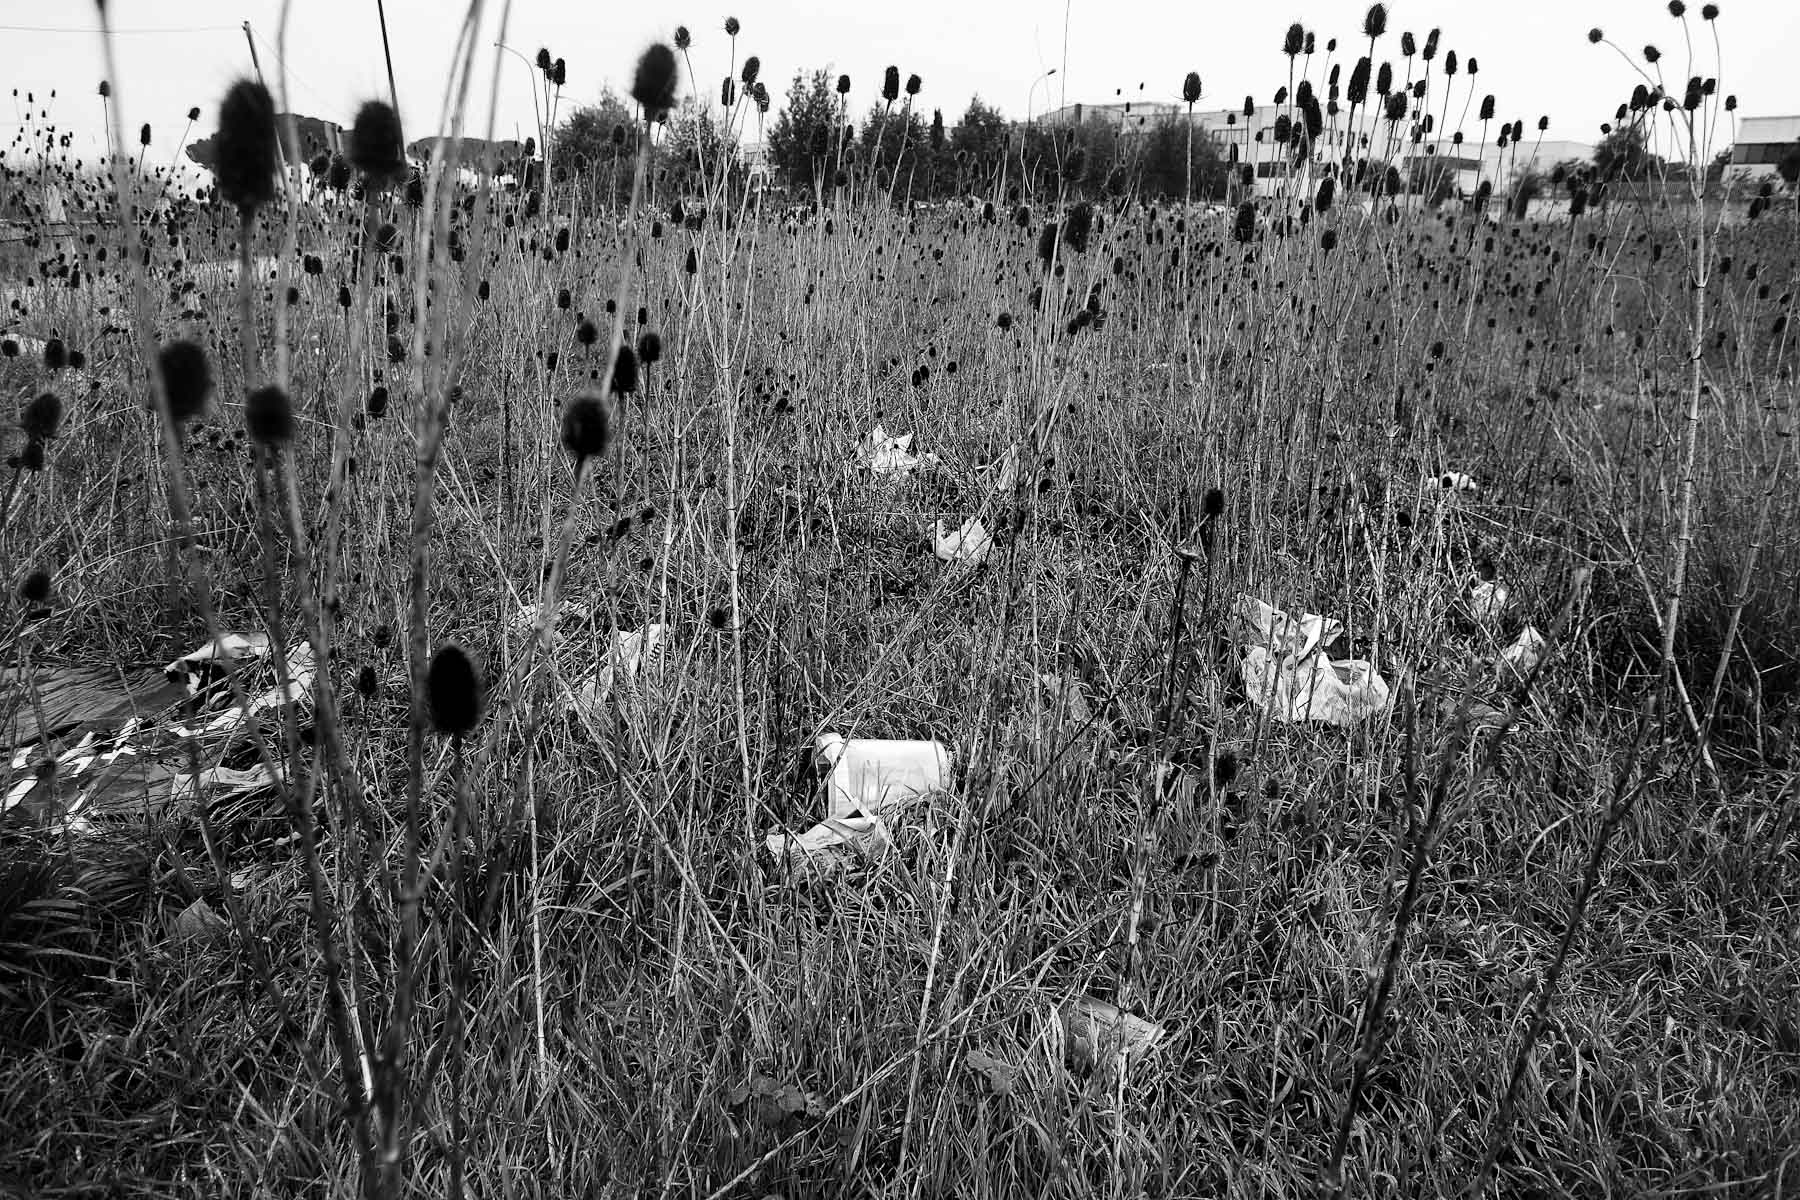 A neglected lawn in an industrial part of Caserta on the outskirts of Naples on February 21, 2008.